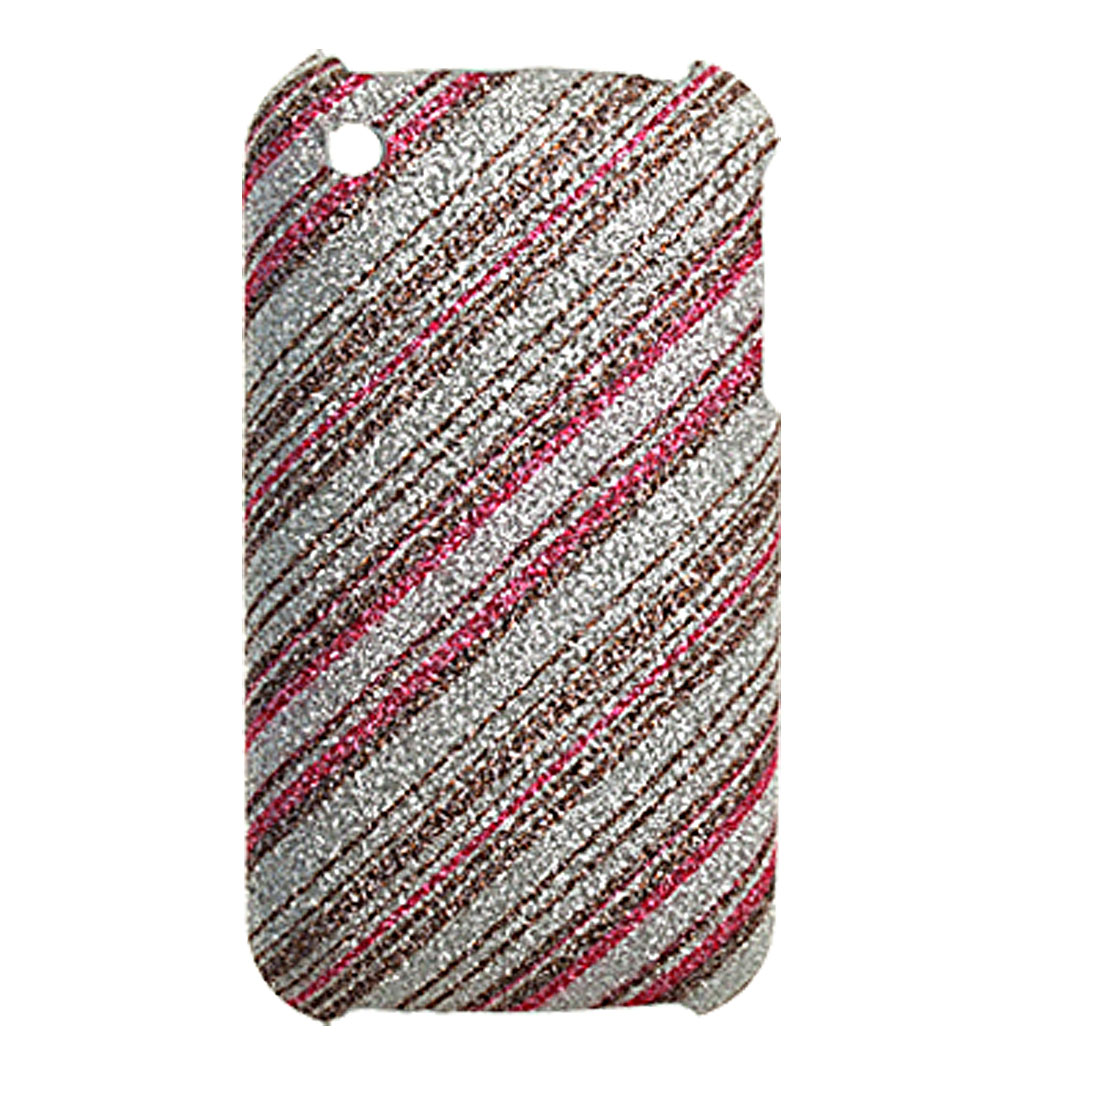 Plastic Glittery Leather Coated Back Case for iPhone 3GS